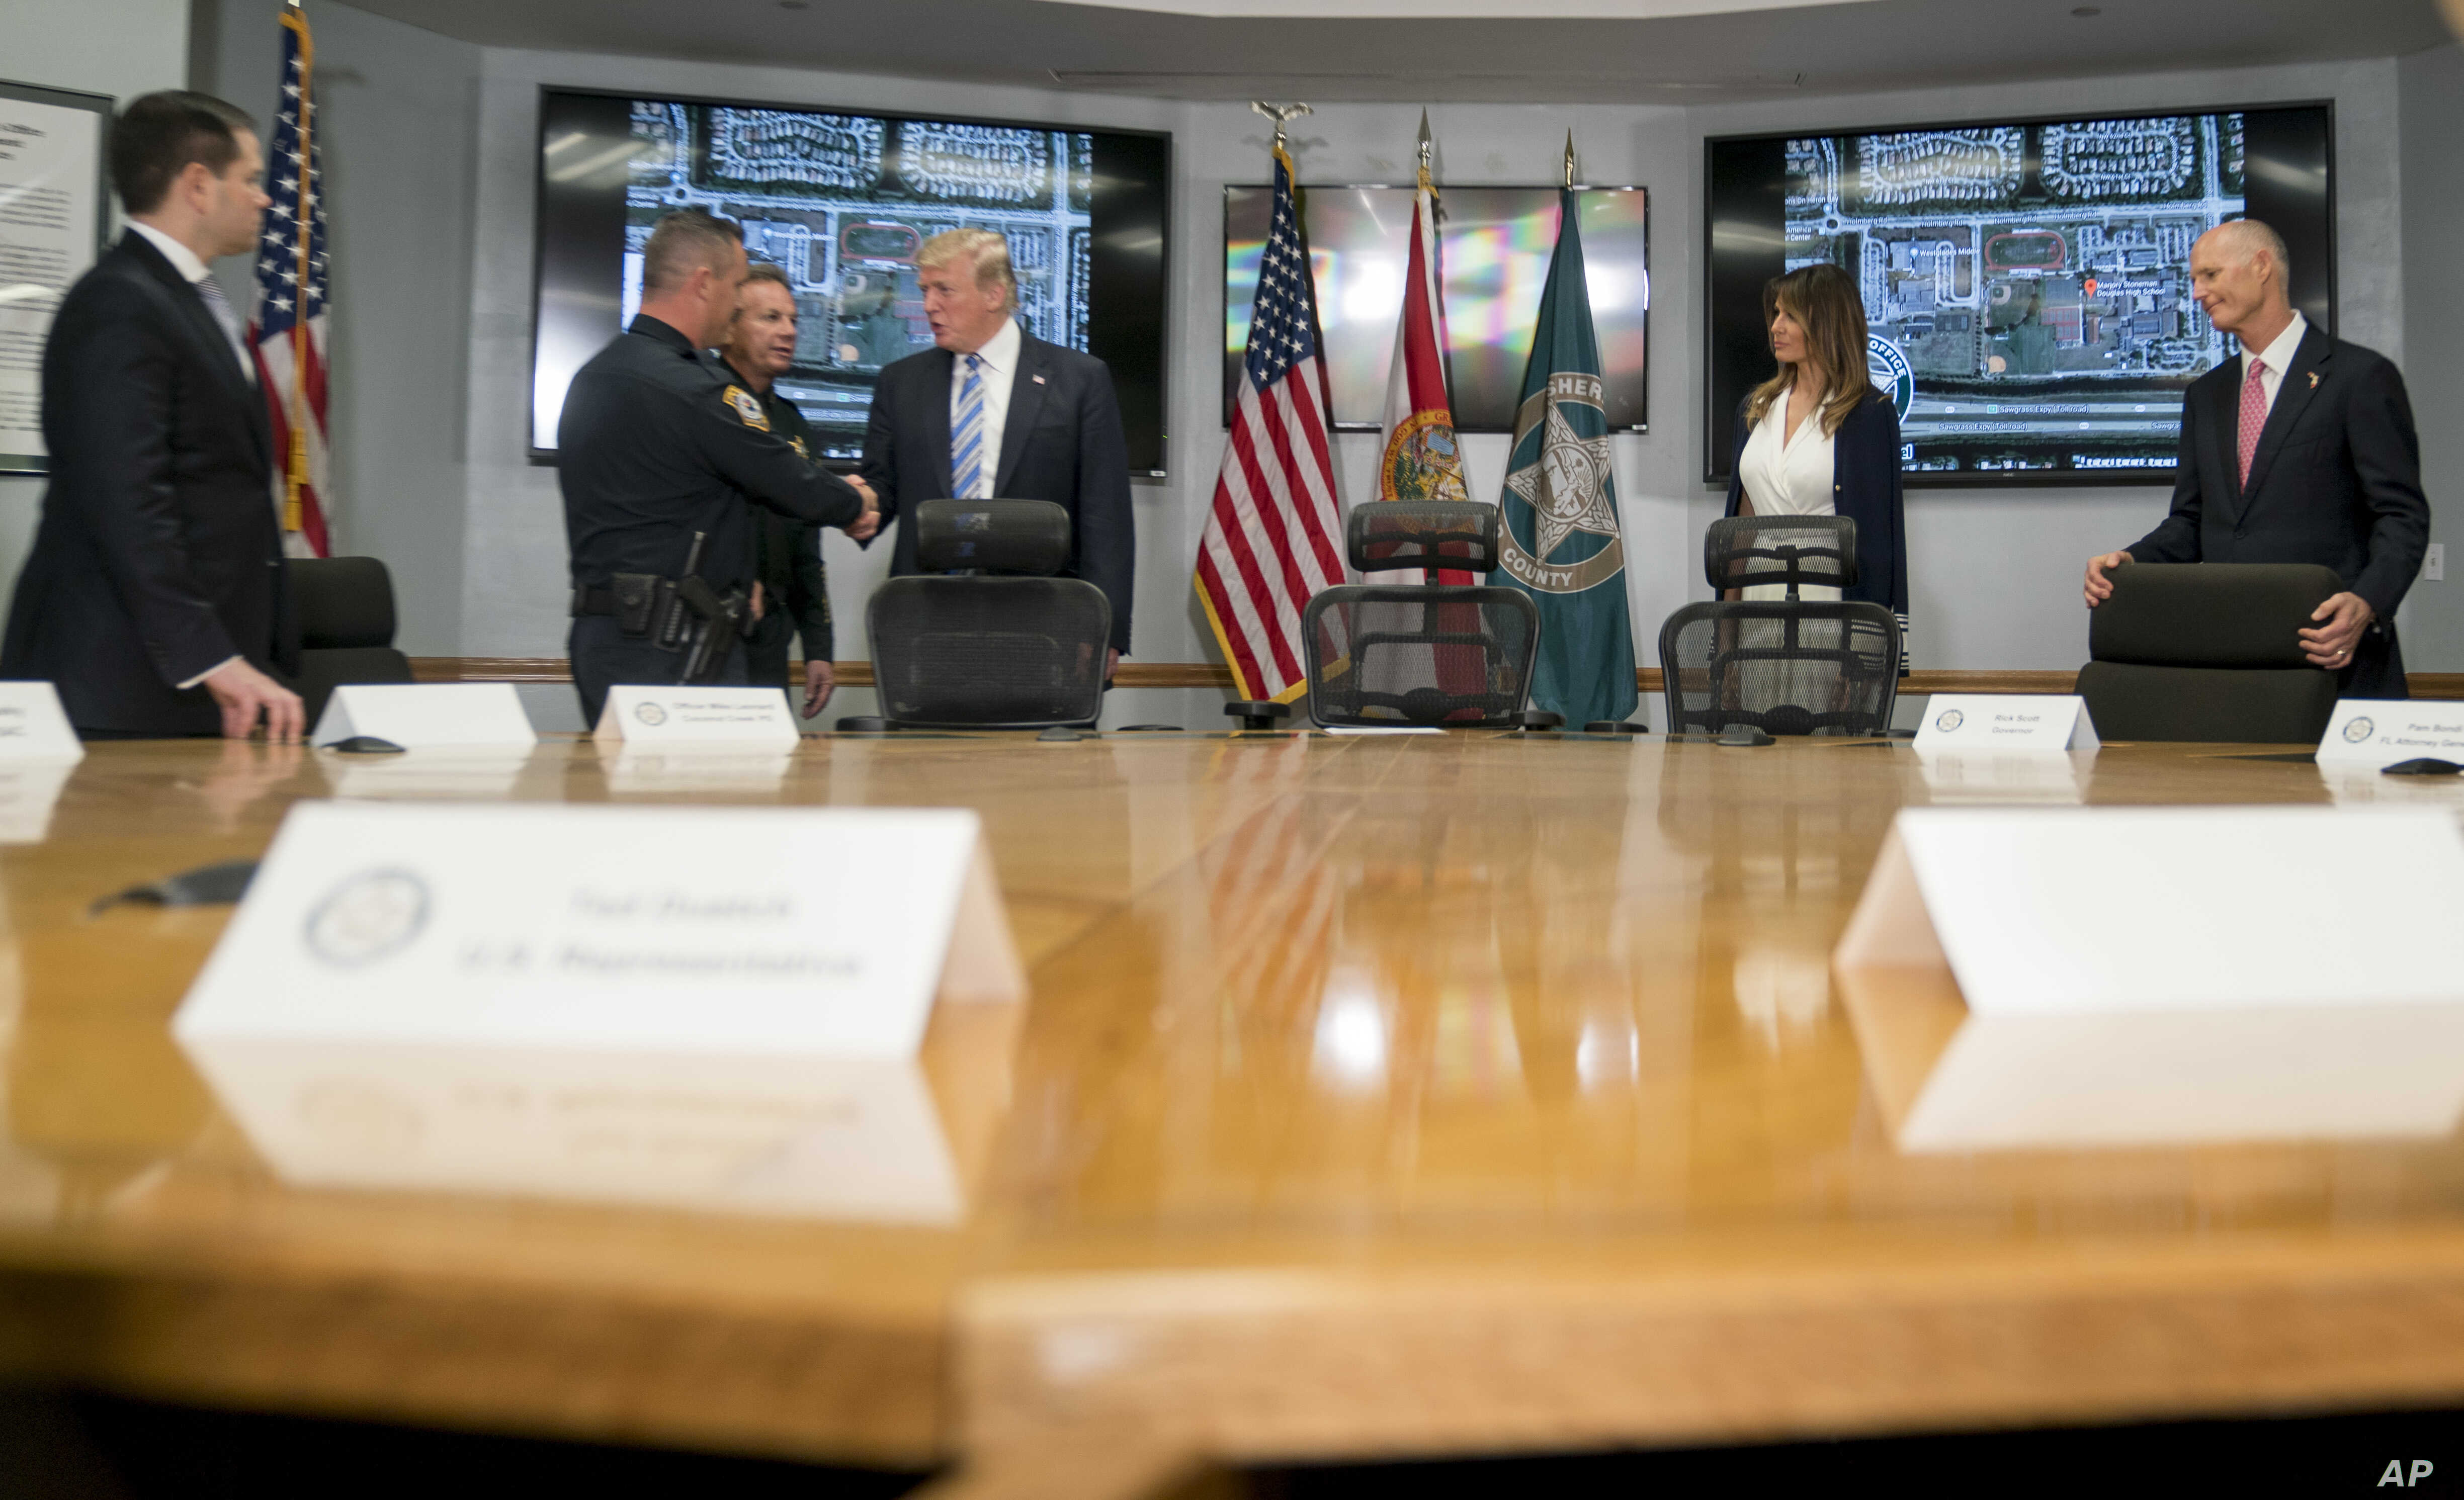 President Donald Trump, third from right, shakes hands with Coconut Creek Police Officer Mike Leonard, second from left, as he meets with law enforcement officers at Broward County Sheriff's Office in Pompano Beach, Fla., Feb. 16, 2018, following the